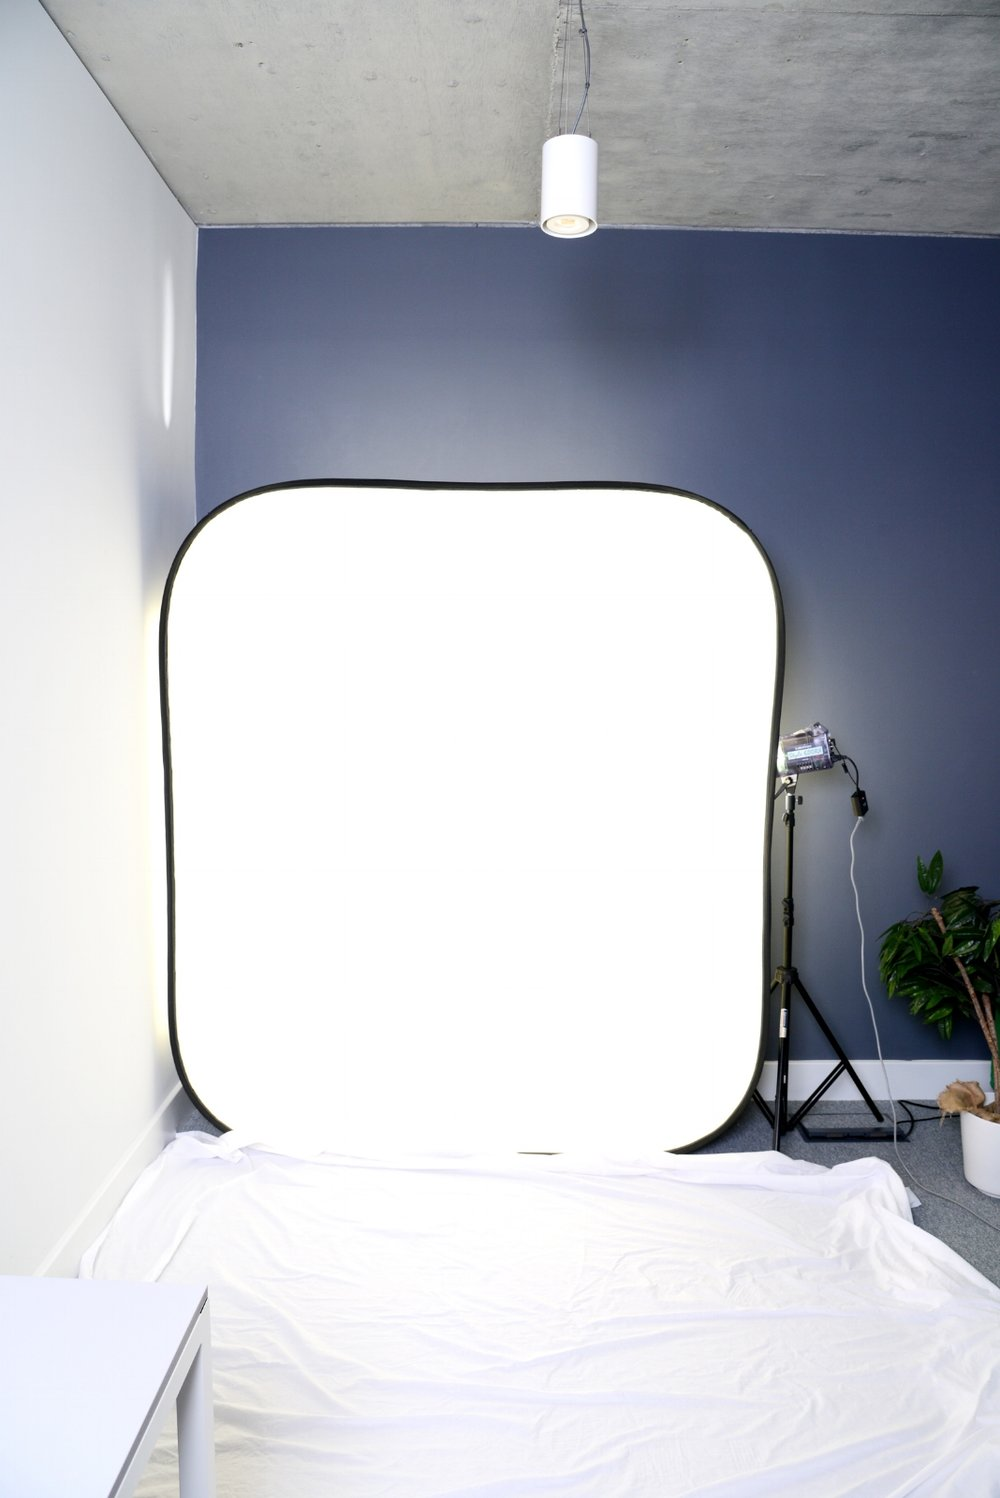 simple in-office studio set-up - easy to clean up afterwards